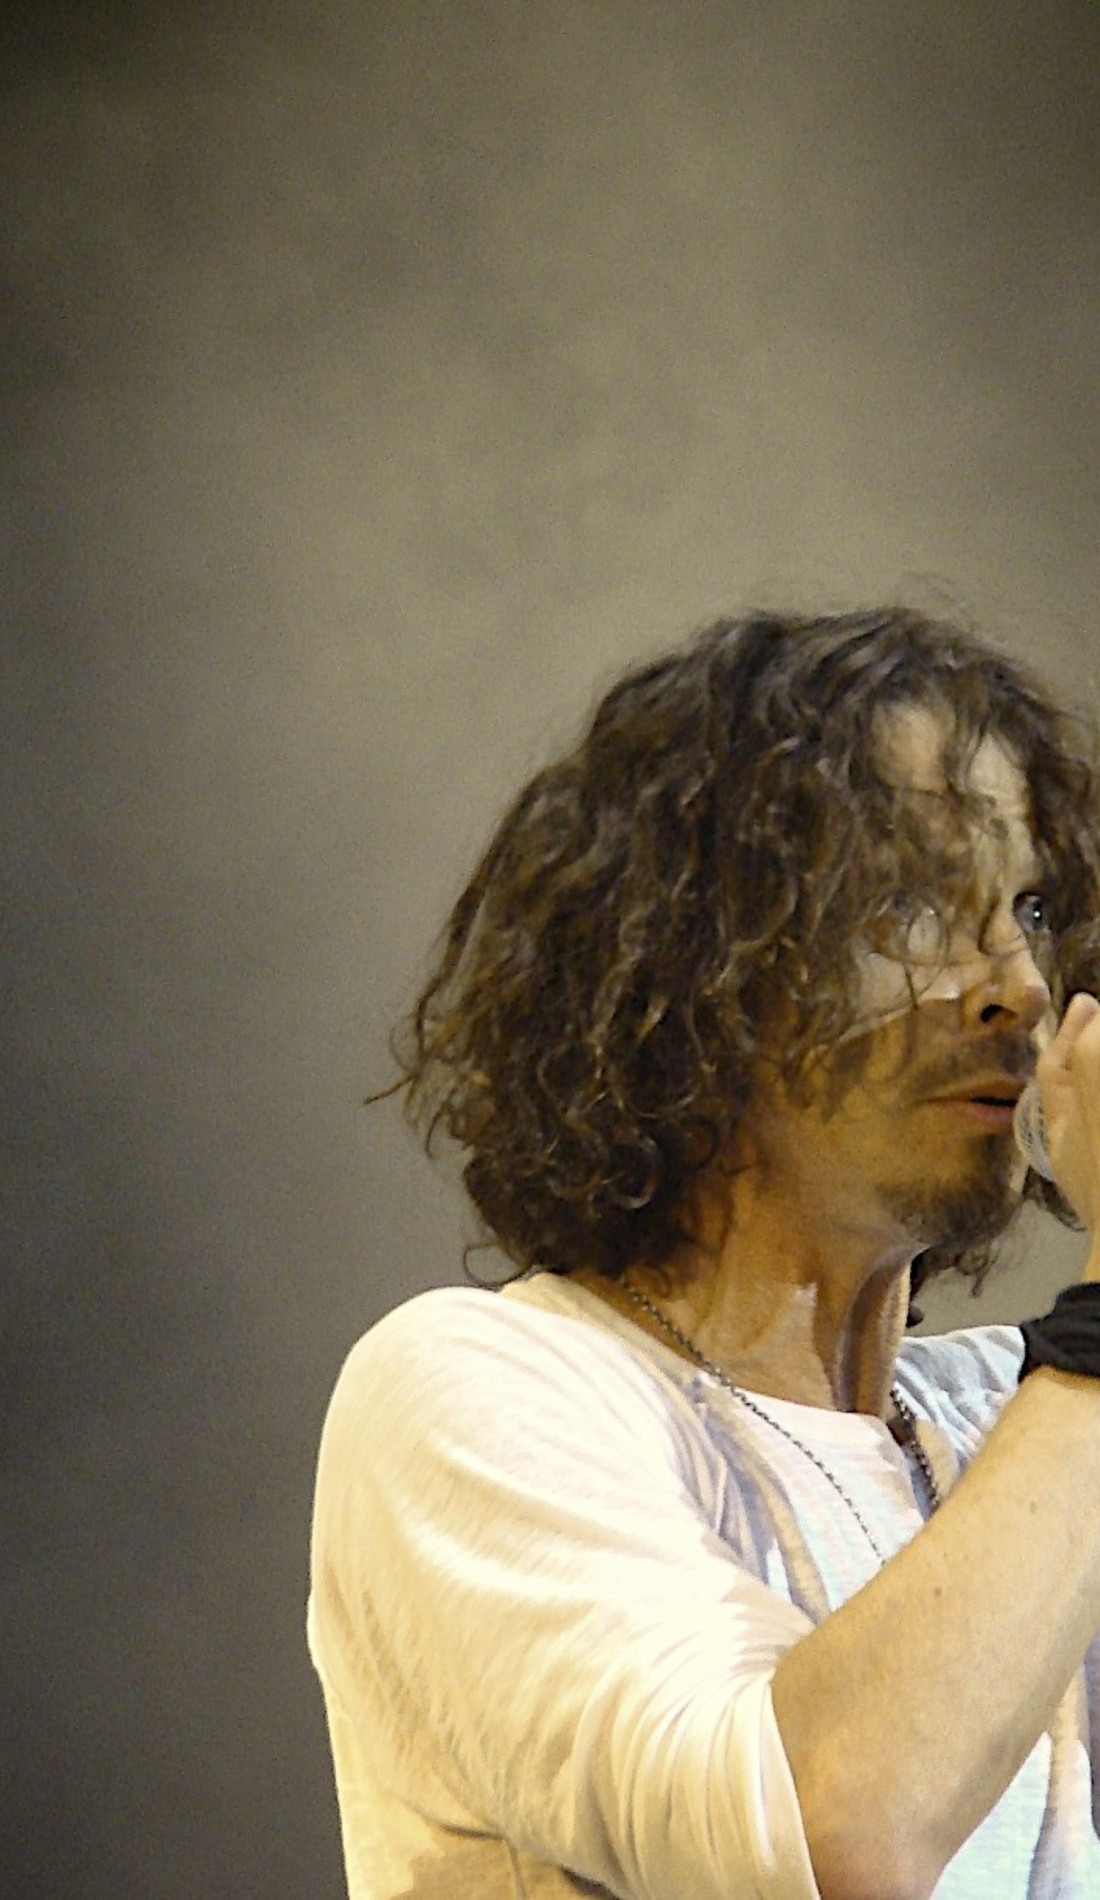 A Temple of the Dog live event